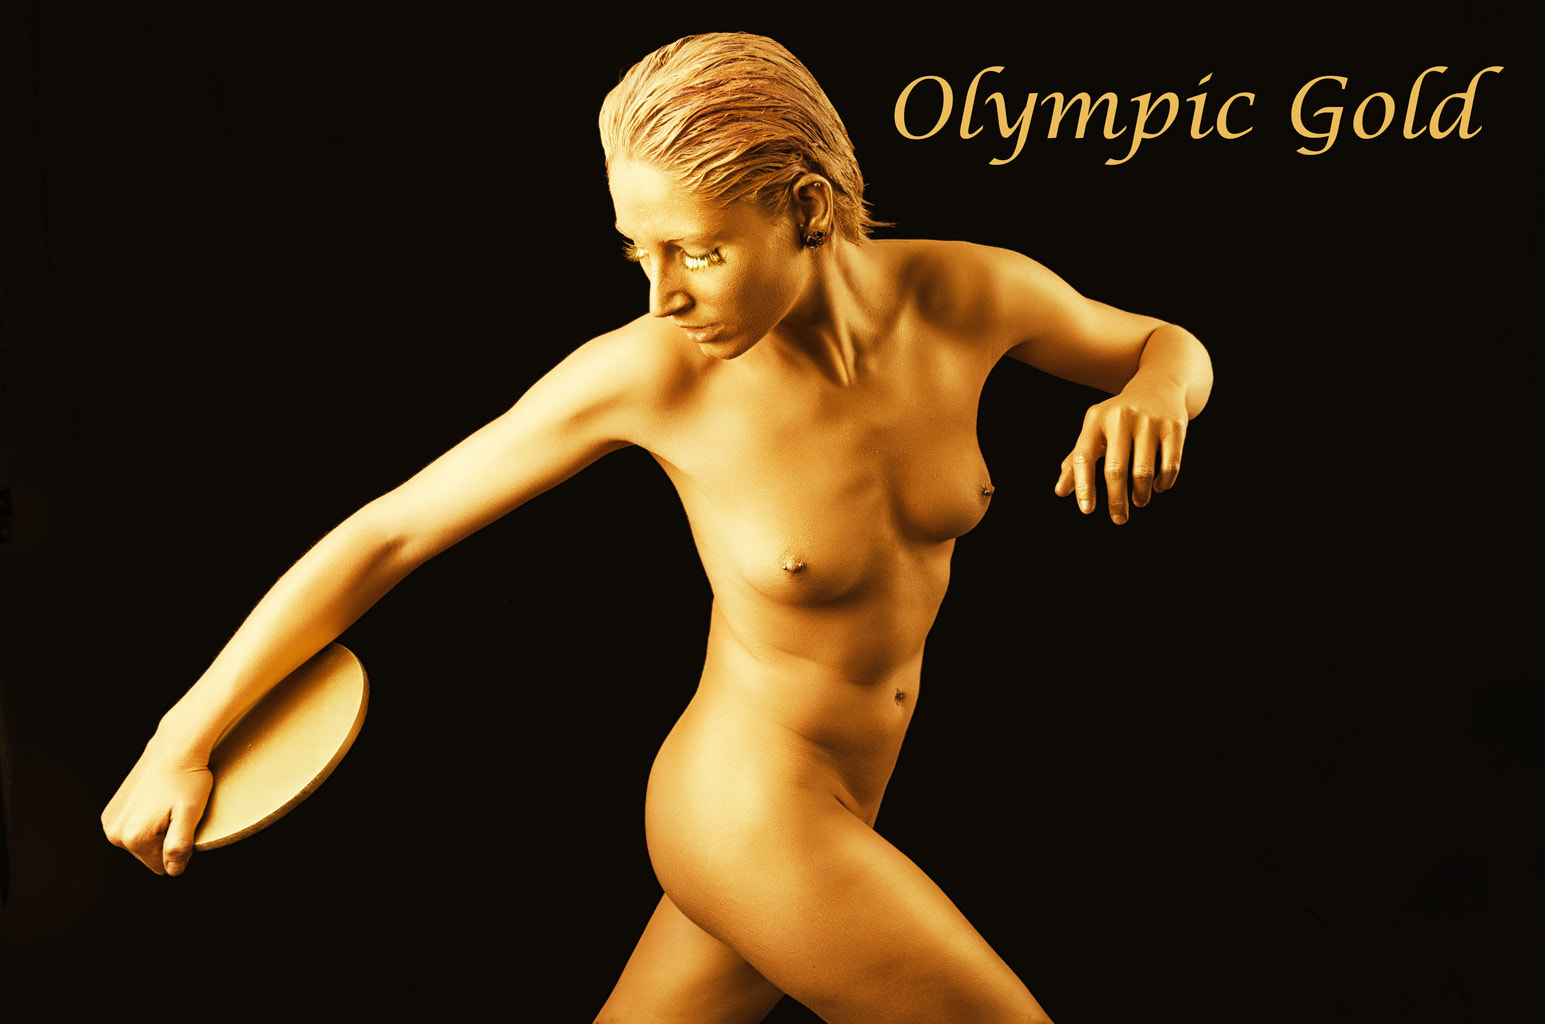 Photograph Olympic Gold by Markus Ernst on 500px